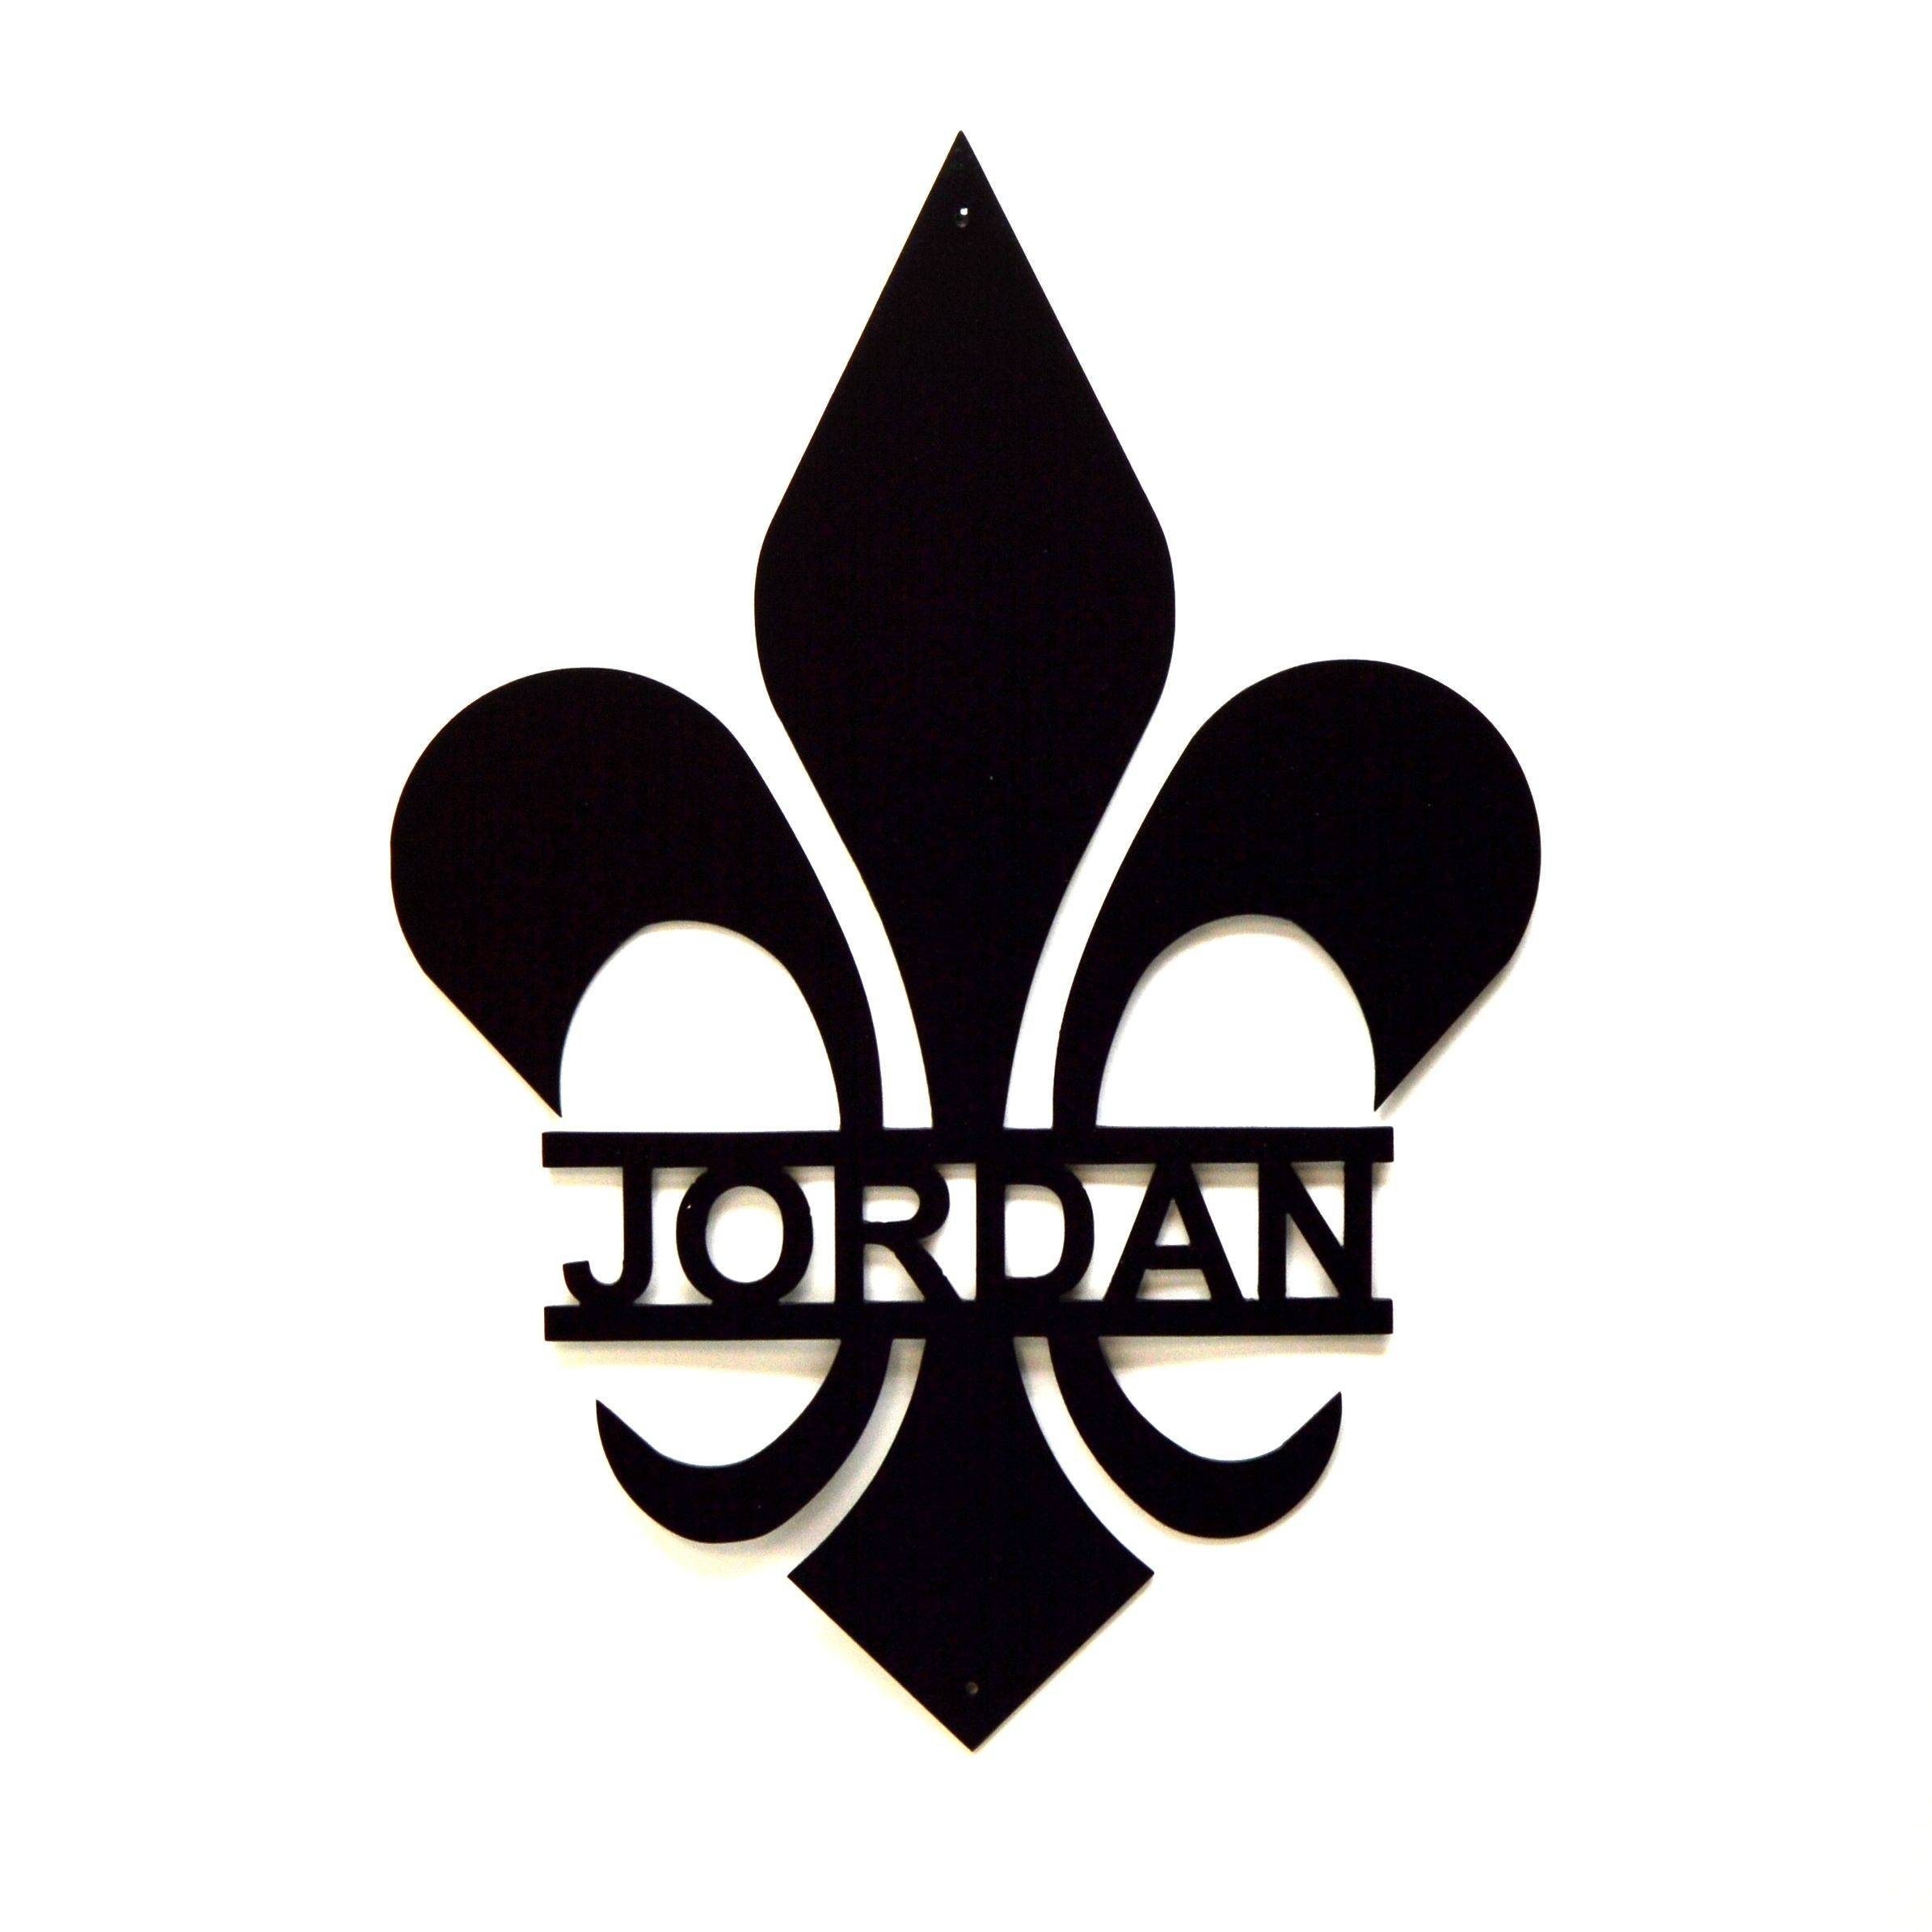 Buy A Hand Made Personalized Fleur De Lis Metal Wall Art, Made To With Most Popular Fleur De Lis Metal Wall Art (View 20 of 25)